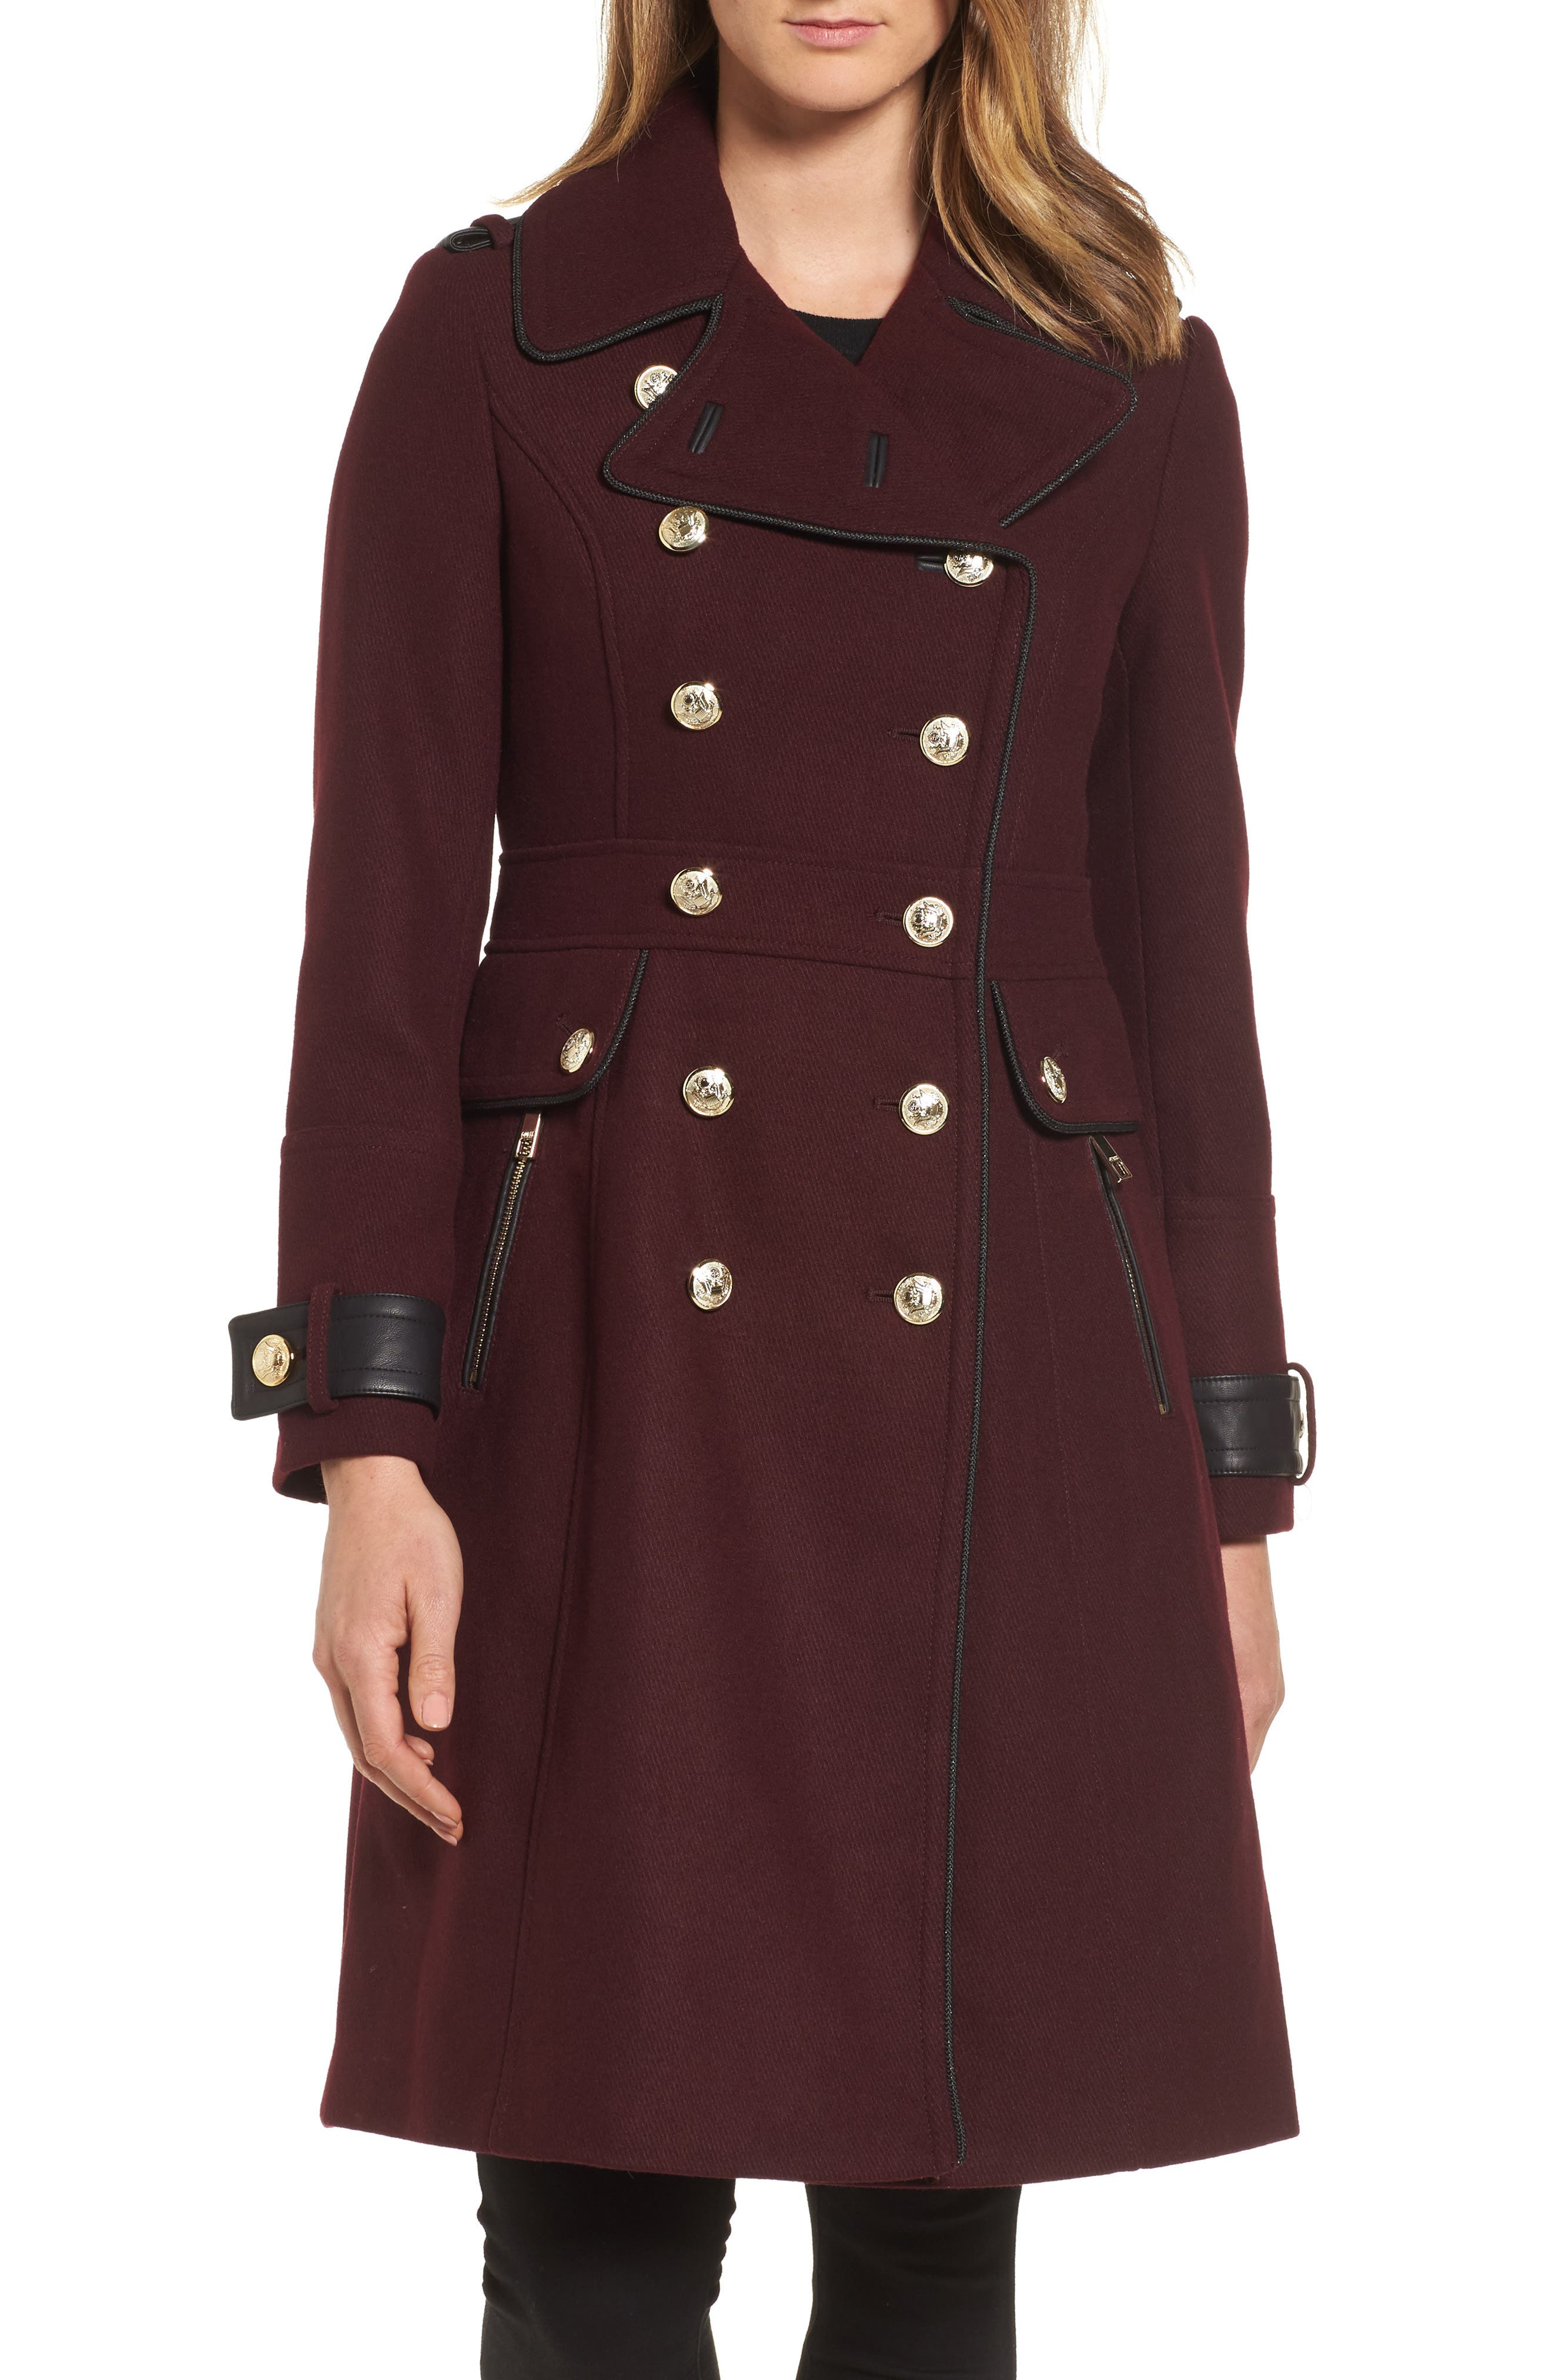 Alternate Image 1 Selected - GUESS Wool Blend Military Coat